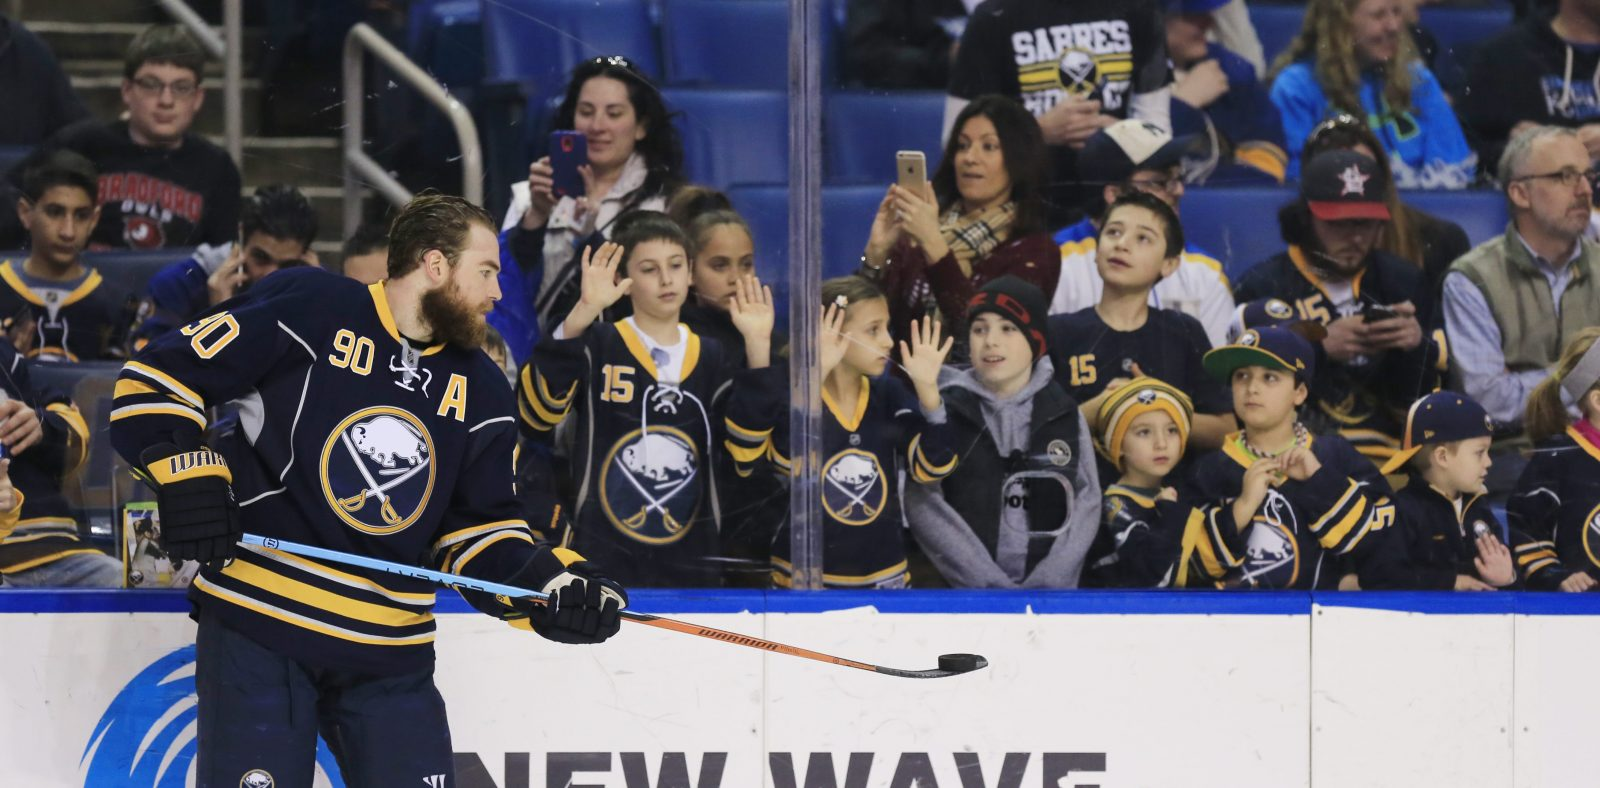 Buffalo Sabres Ryan O'Reilly tosses a puck to fans during pregame prior to playing the Winnipeg Jets at the First Niagara Center on Saturday, March 26, 2016. (Harry Scull Jr./Buffalo News)